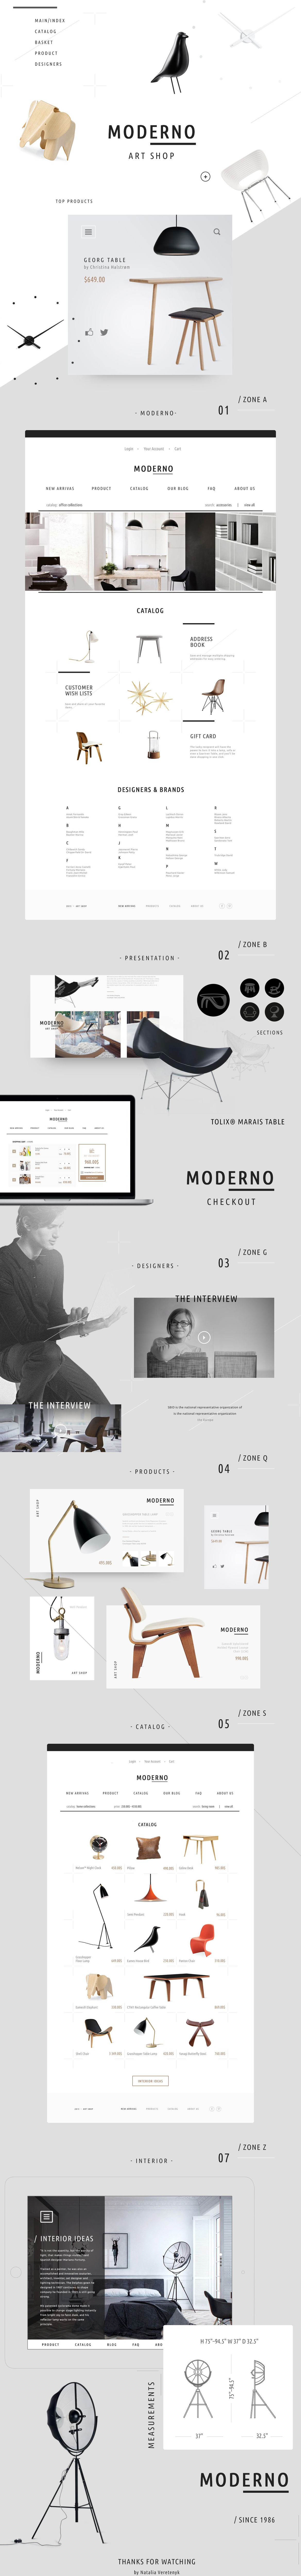 MODERNO is art shop dealing with furniture and accessories for